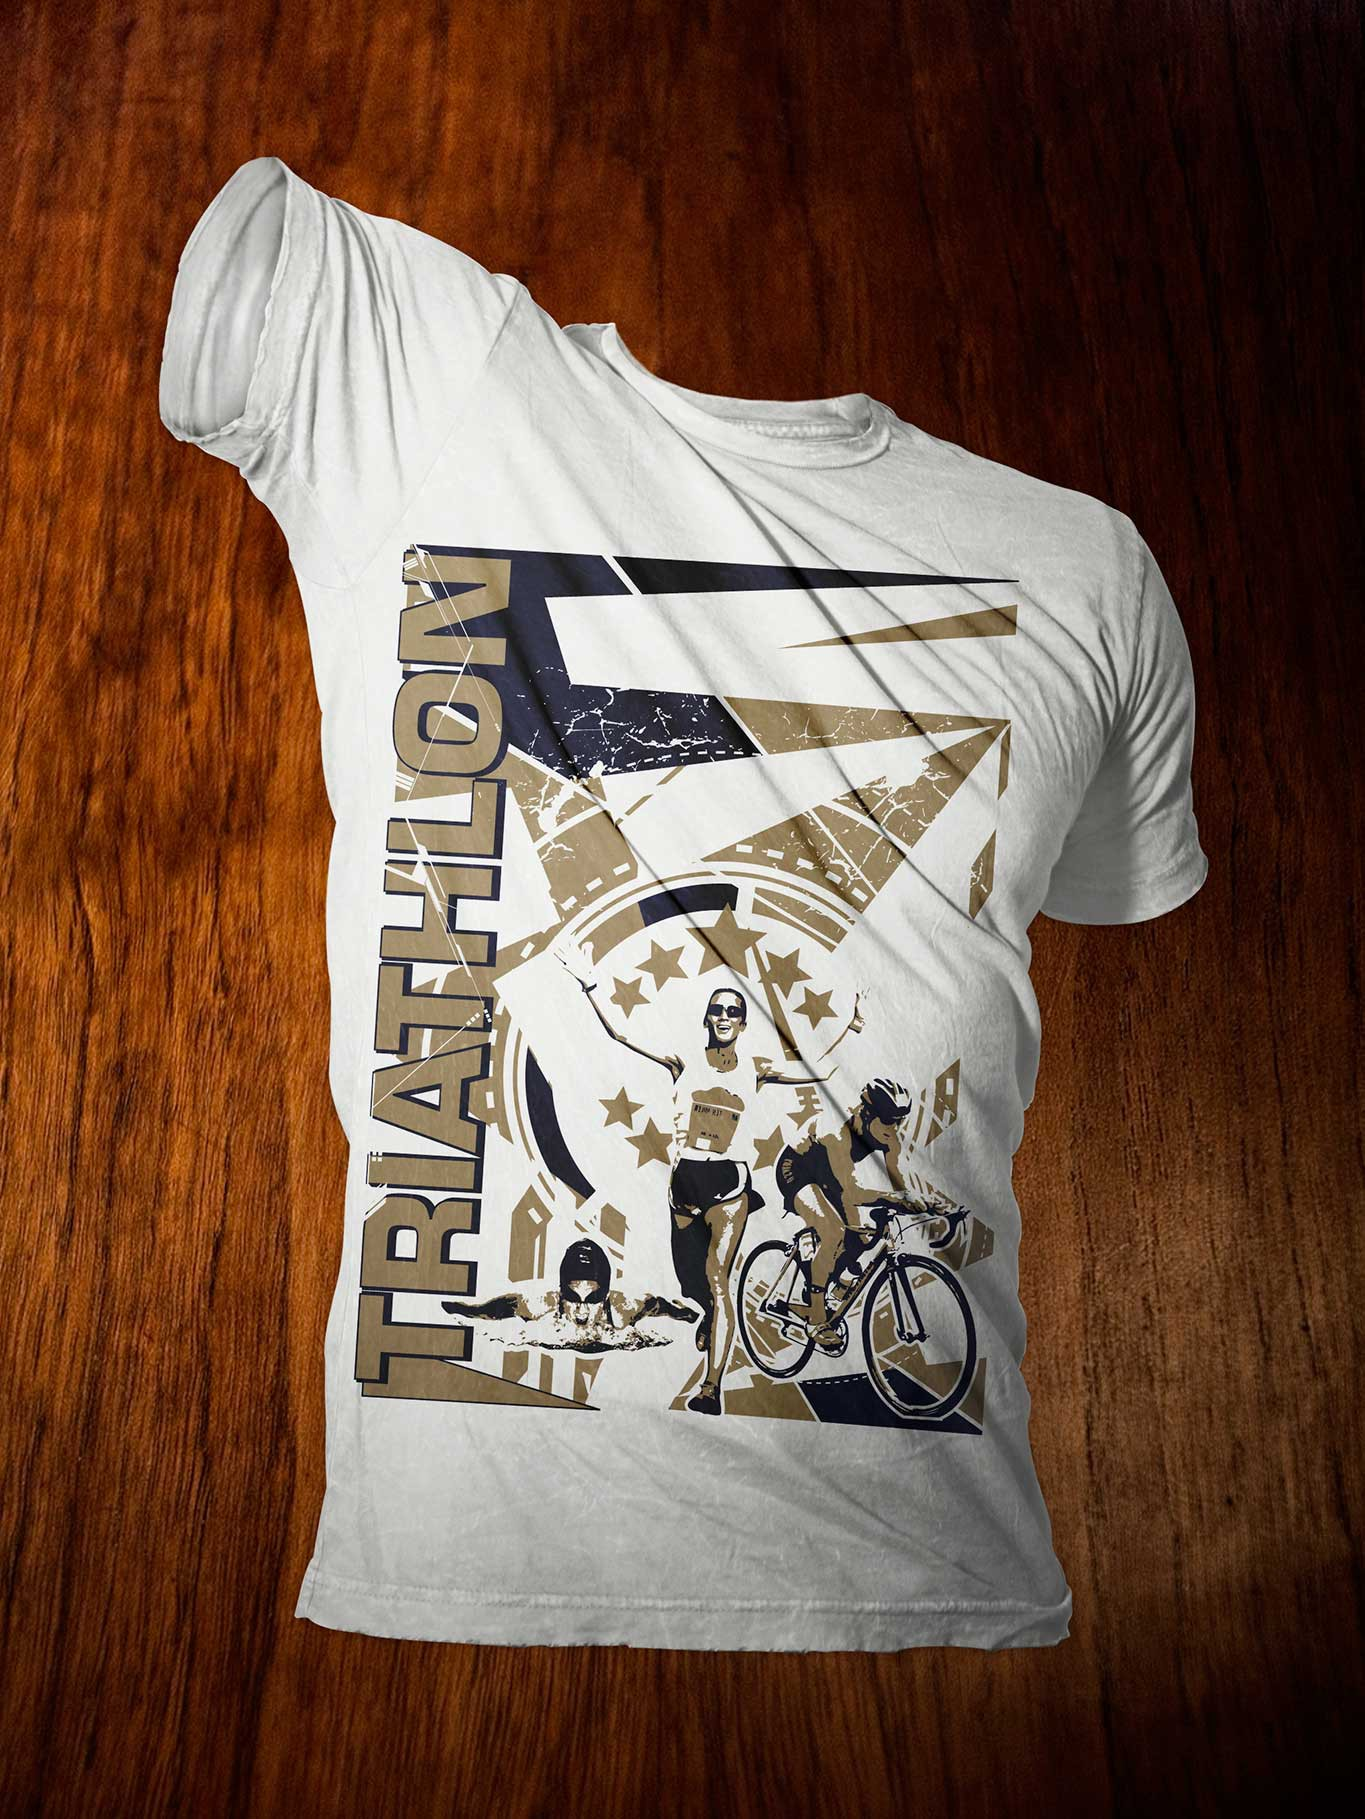 Innovative t-shirt design to promote Triathlons - All Designs Welcome!